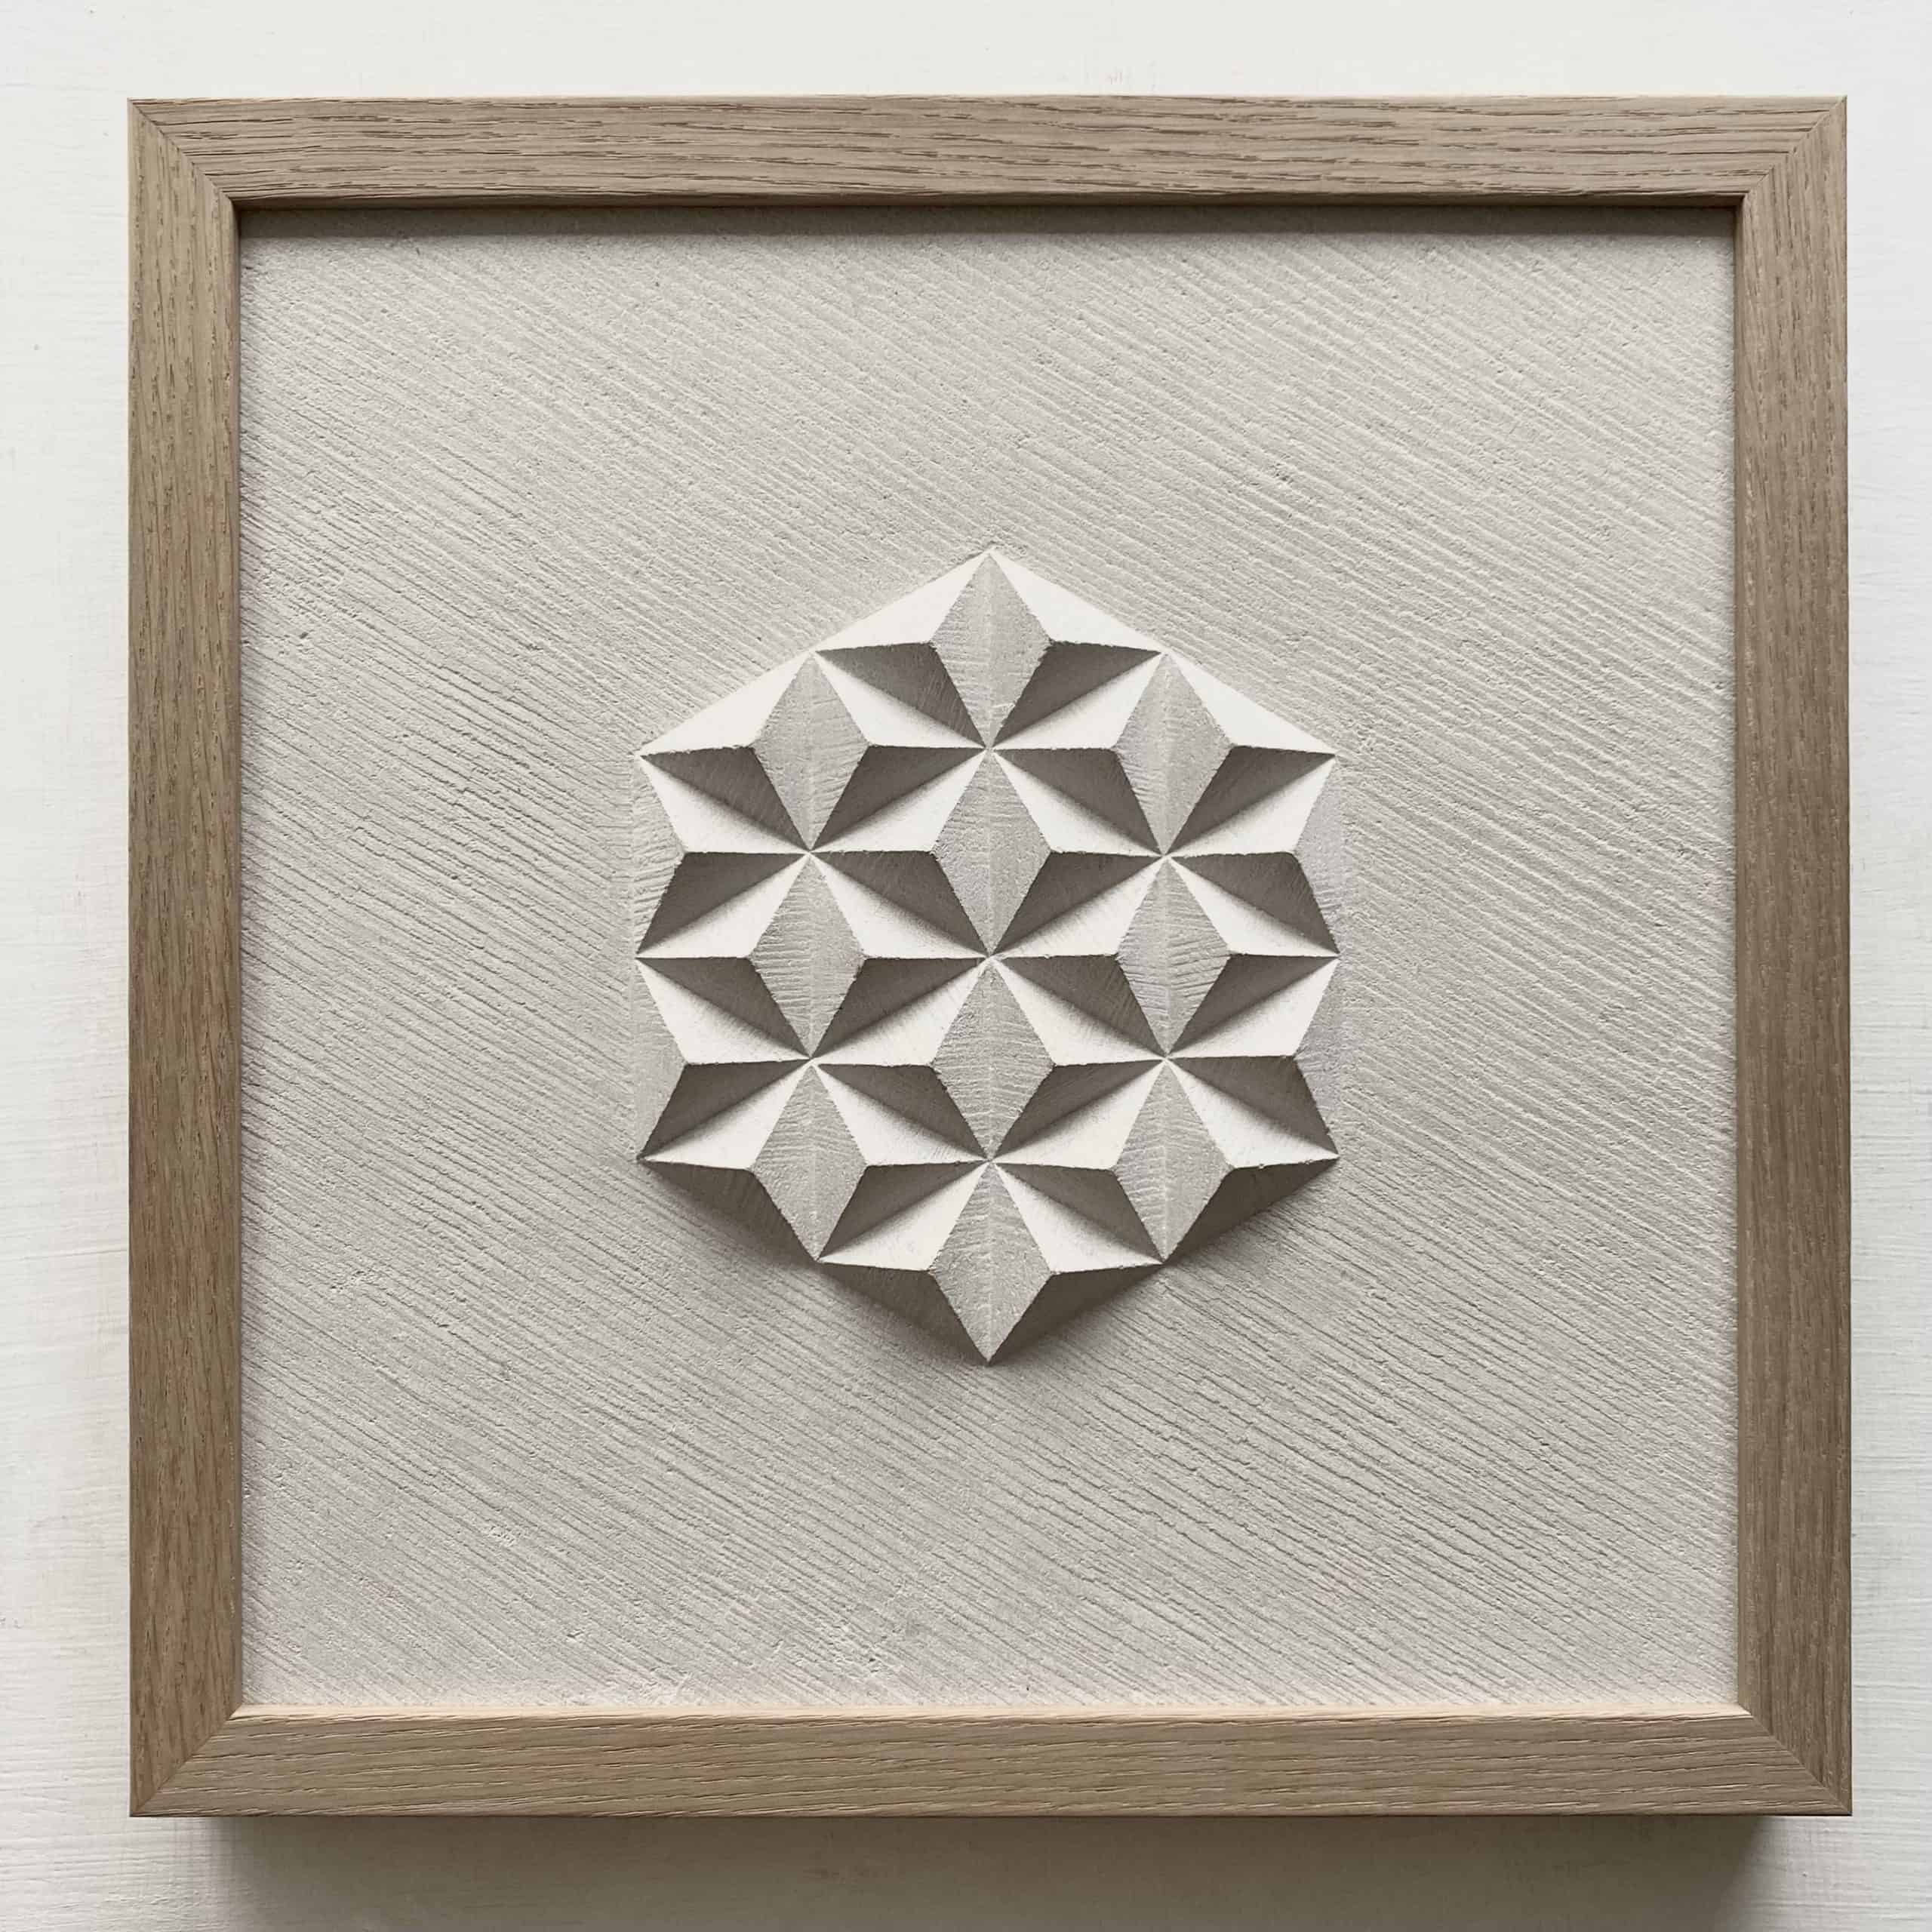 Hand carved geometric pattern which looks like pyramids, in a buff limestone